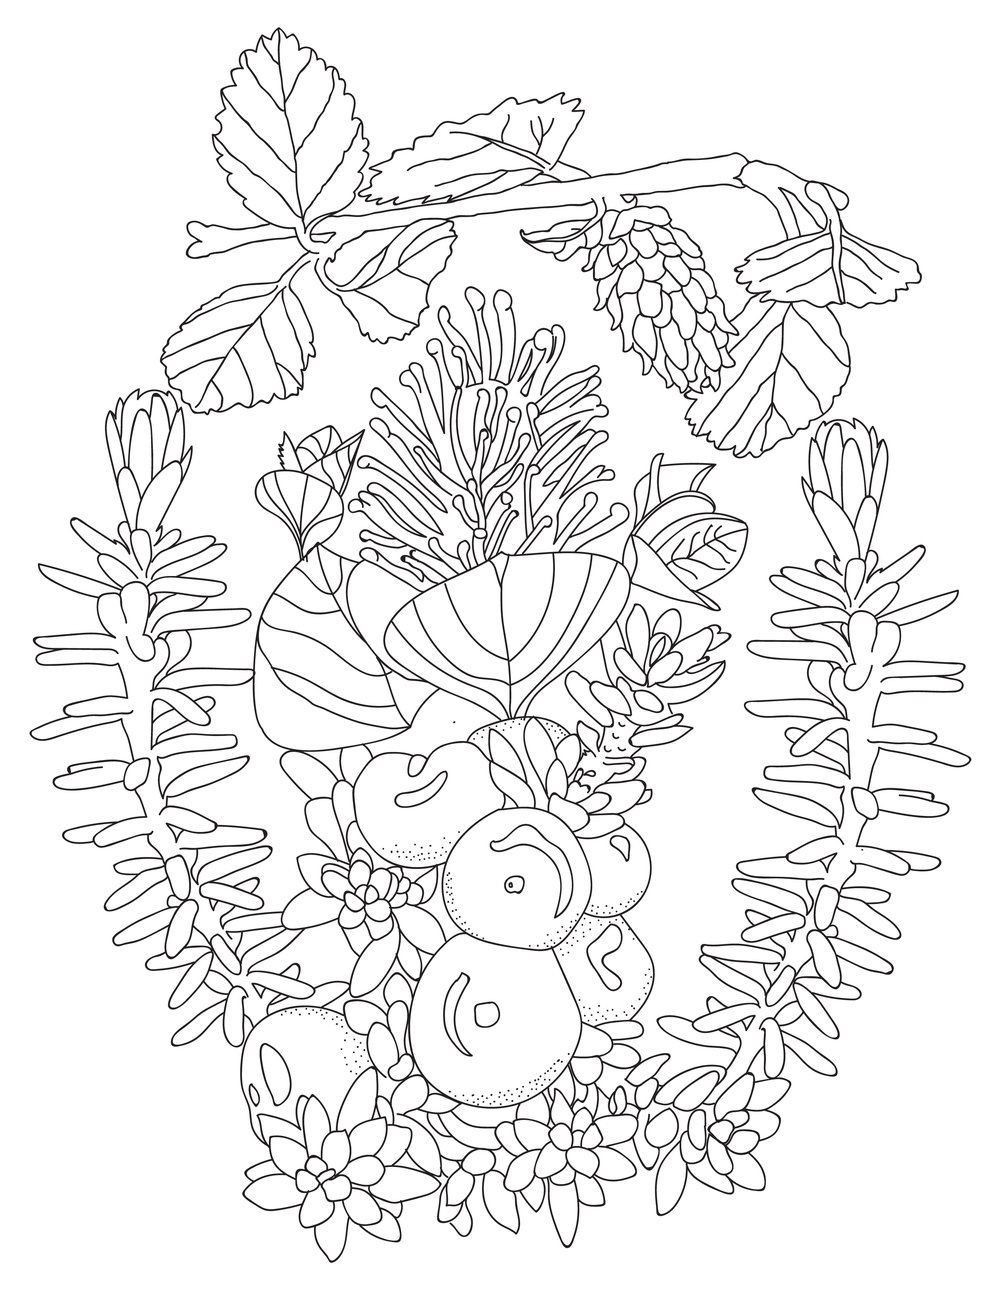 Arctic+Plants+Colouring+sheets-02.jpg